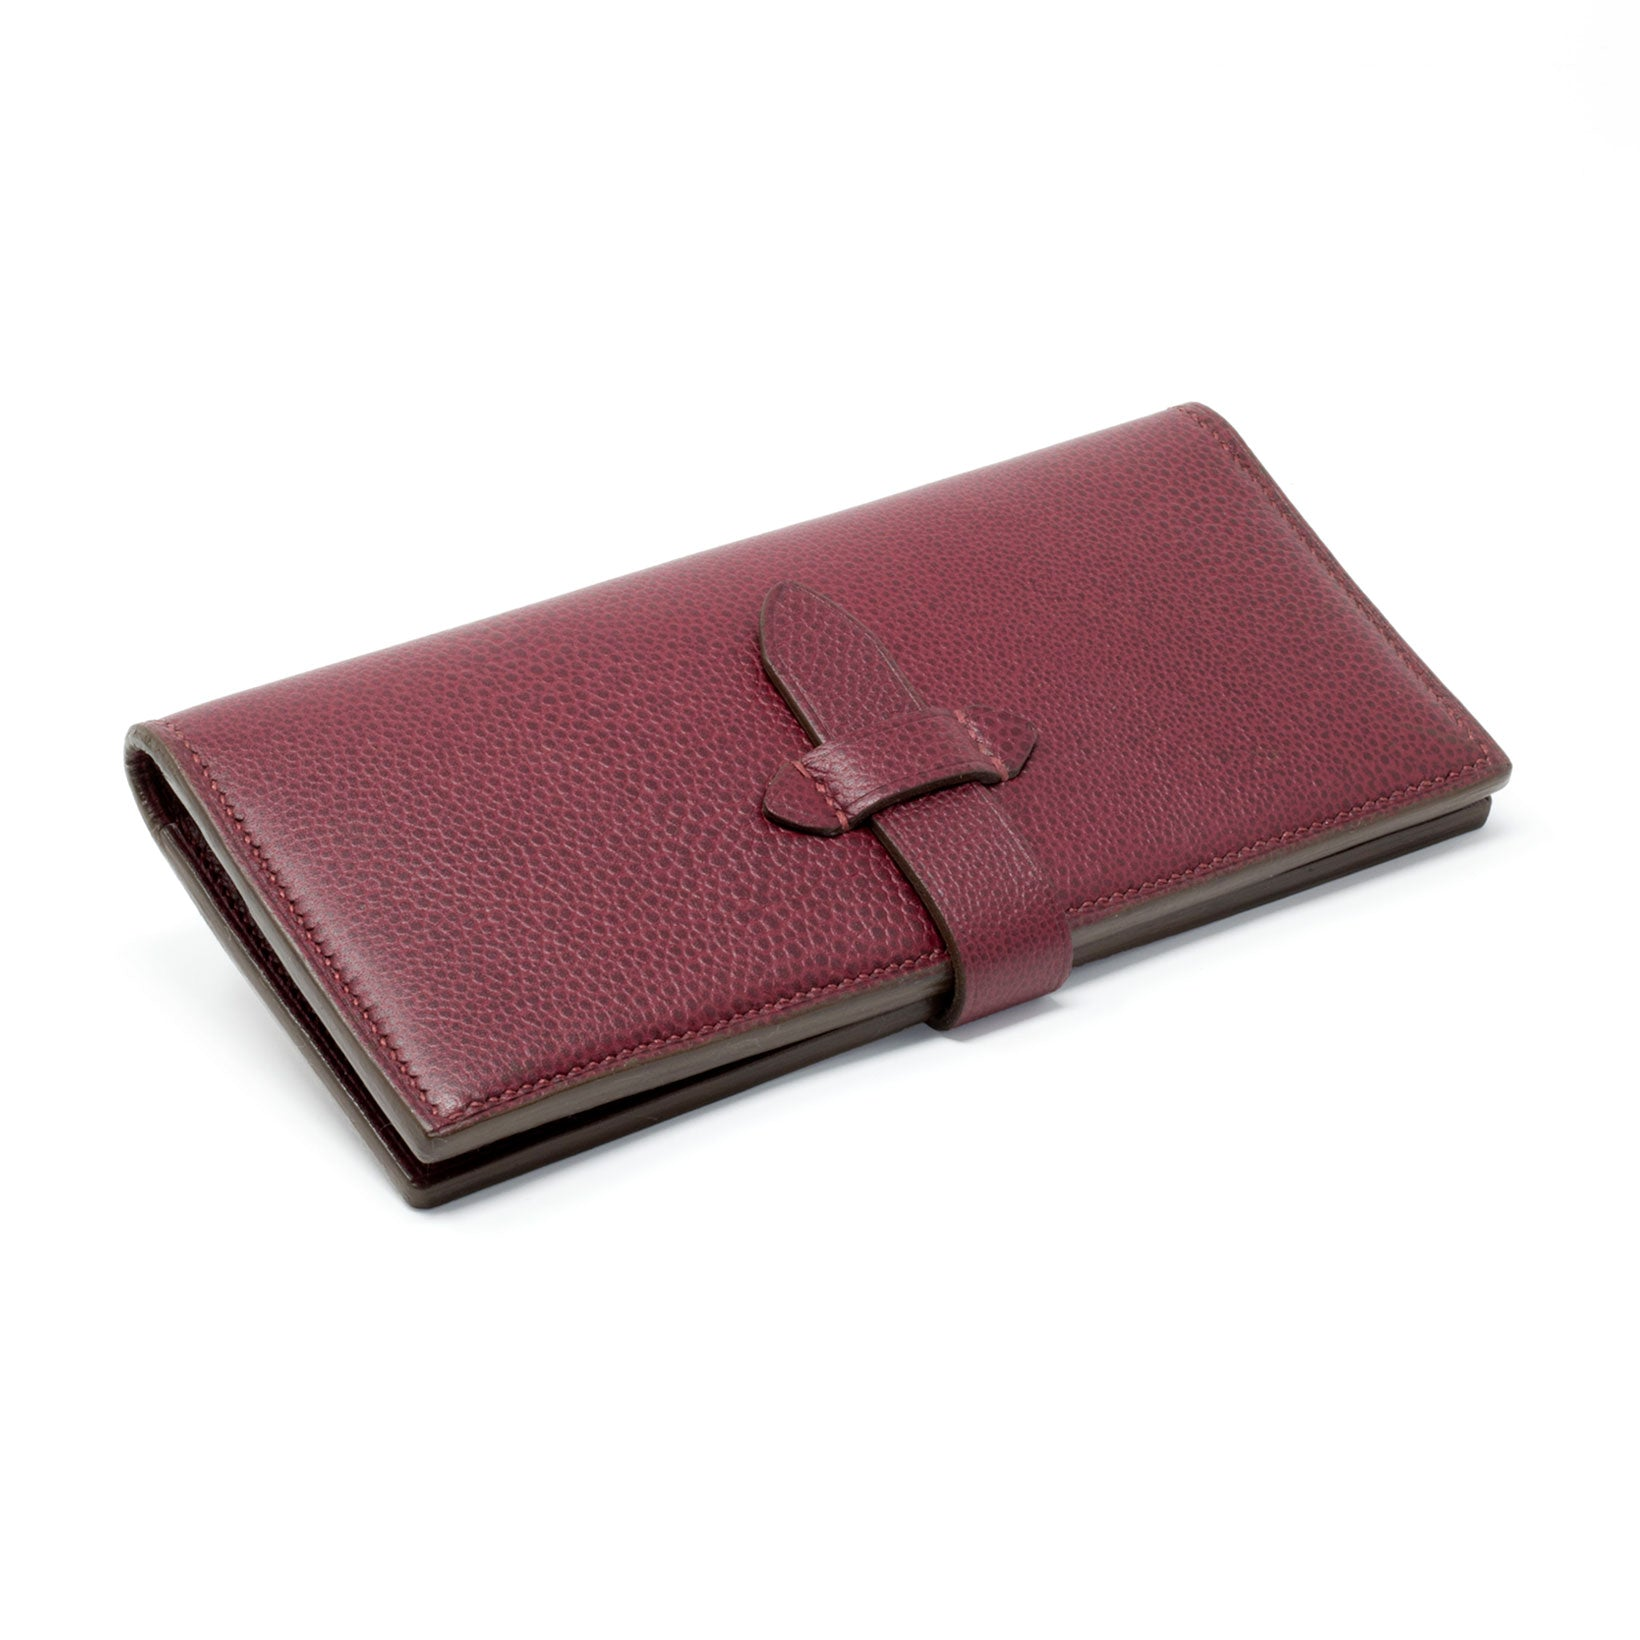 Wythe Long Wallet Handmade by Bruna Andreoni